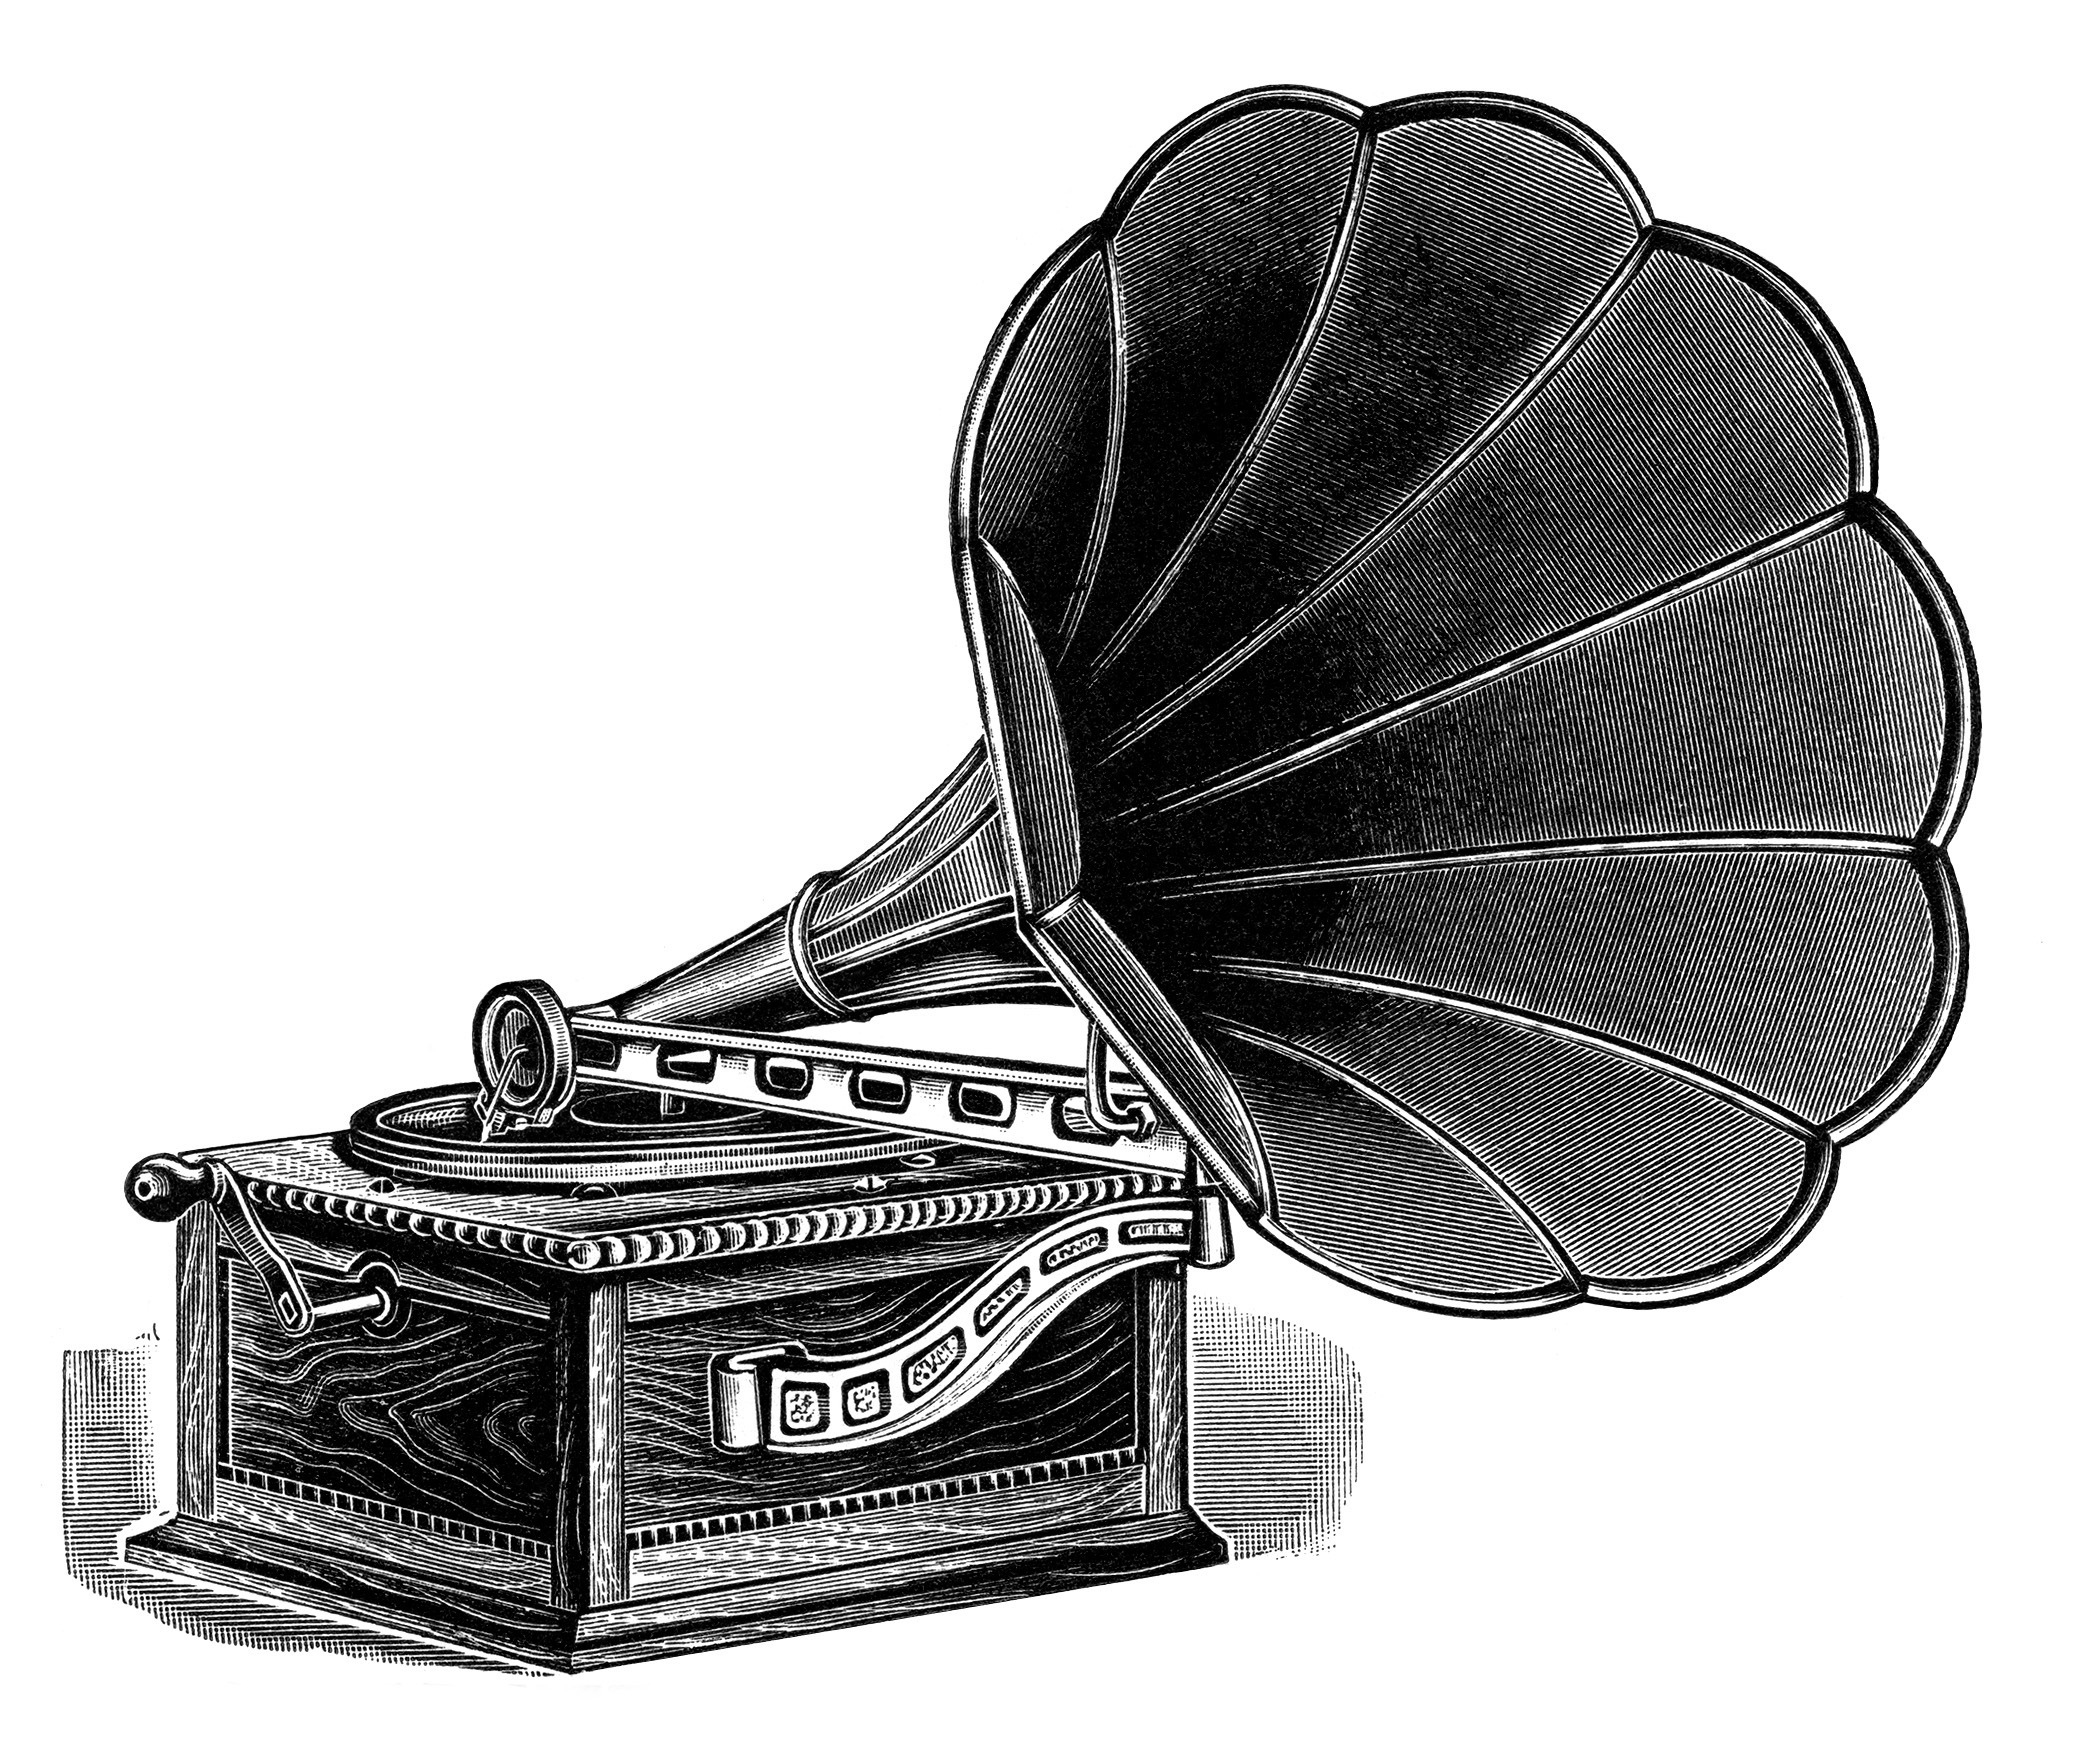 Retro record player clipart.